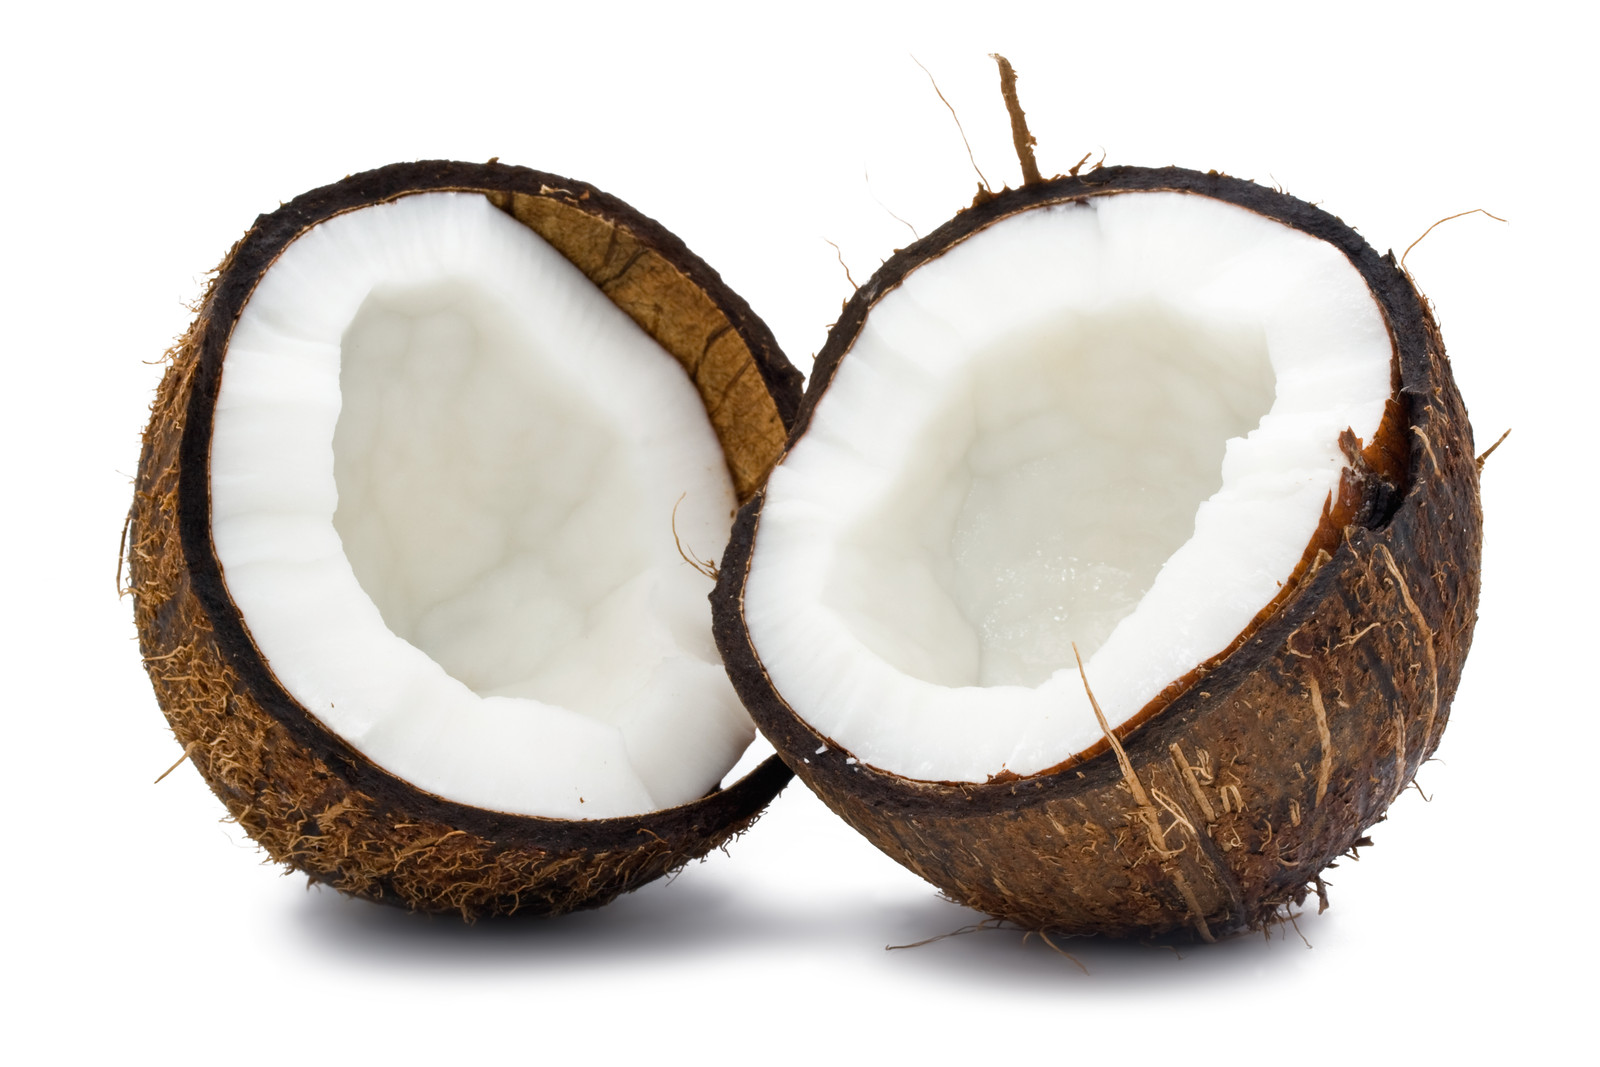 WELCOME TO INTERNATIONAL COCONUT